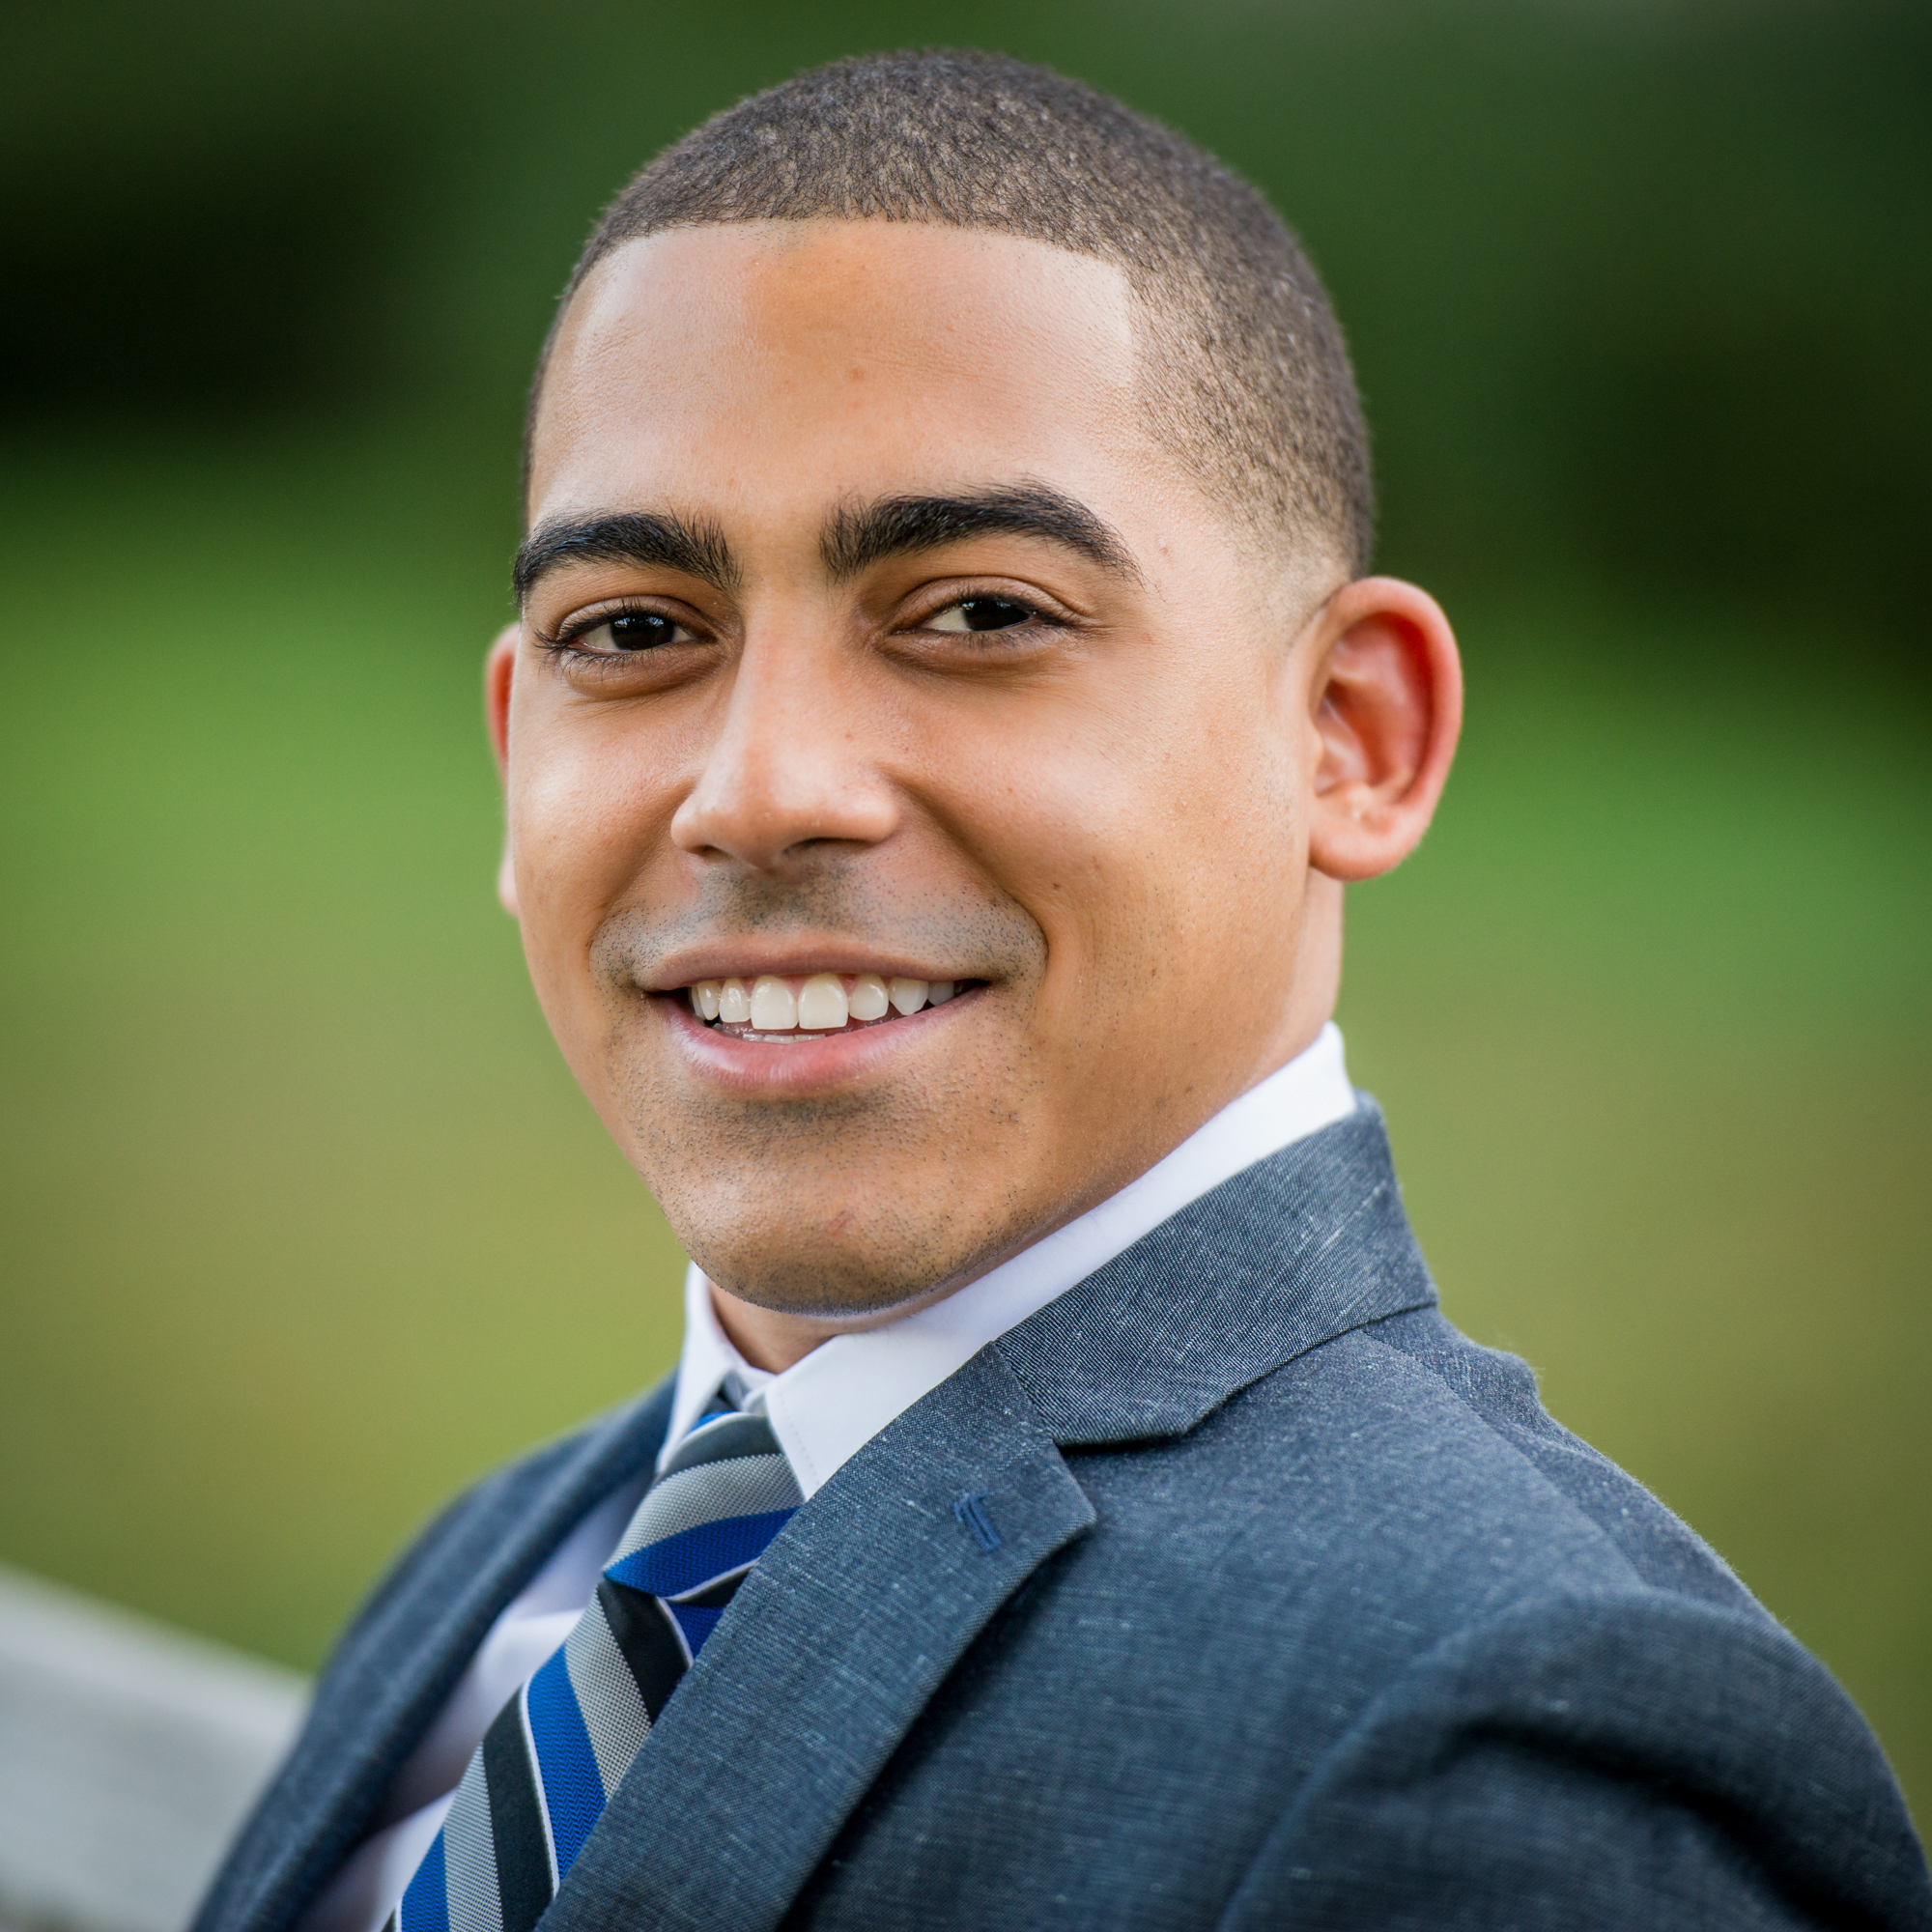 Featured shots from my latest headshot session in Stamford, CT